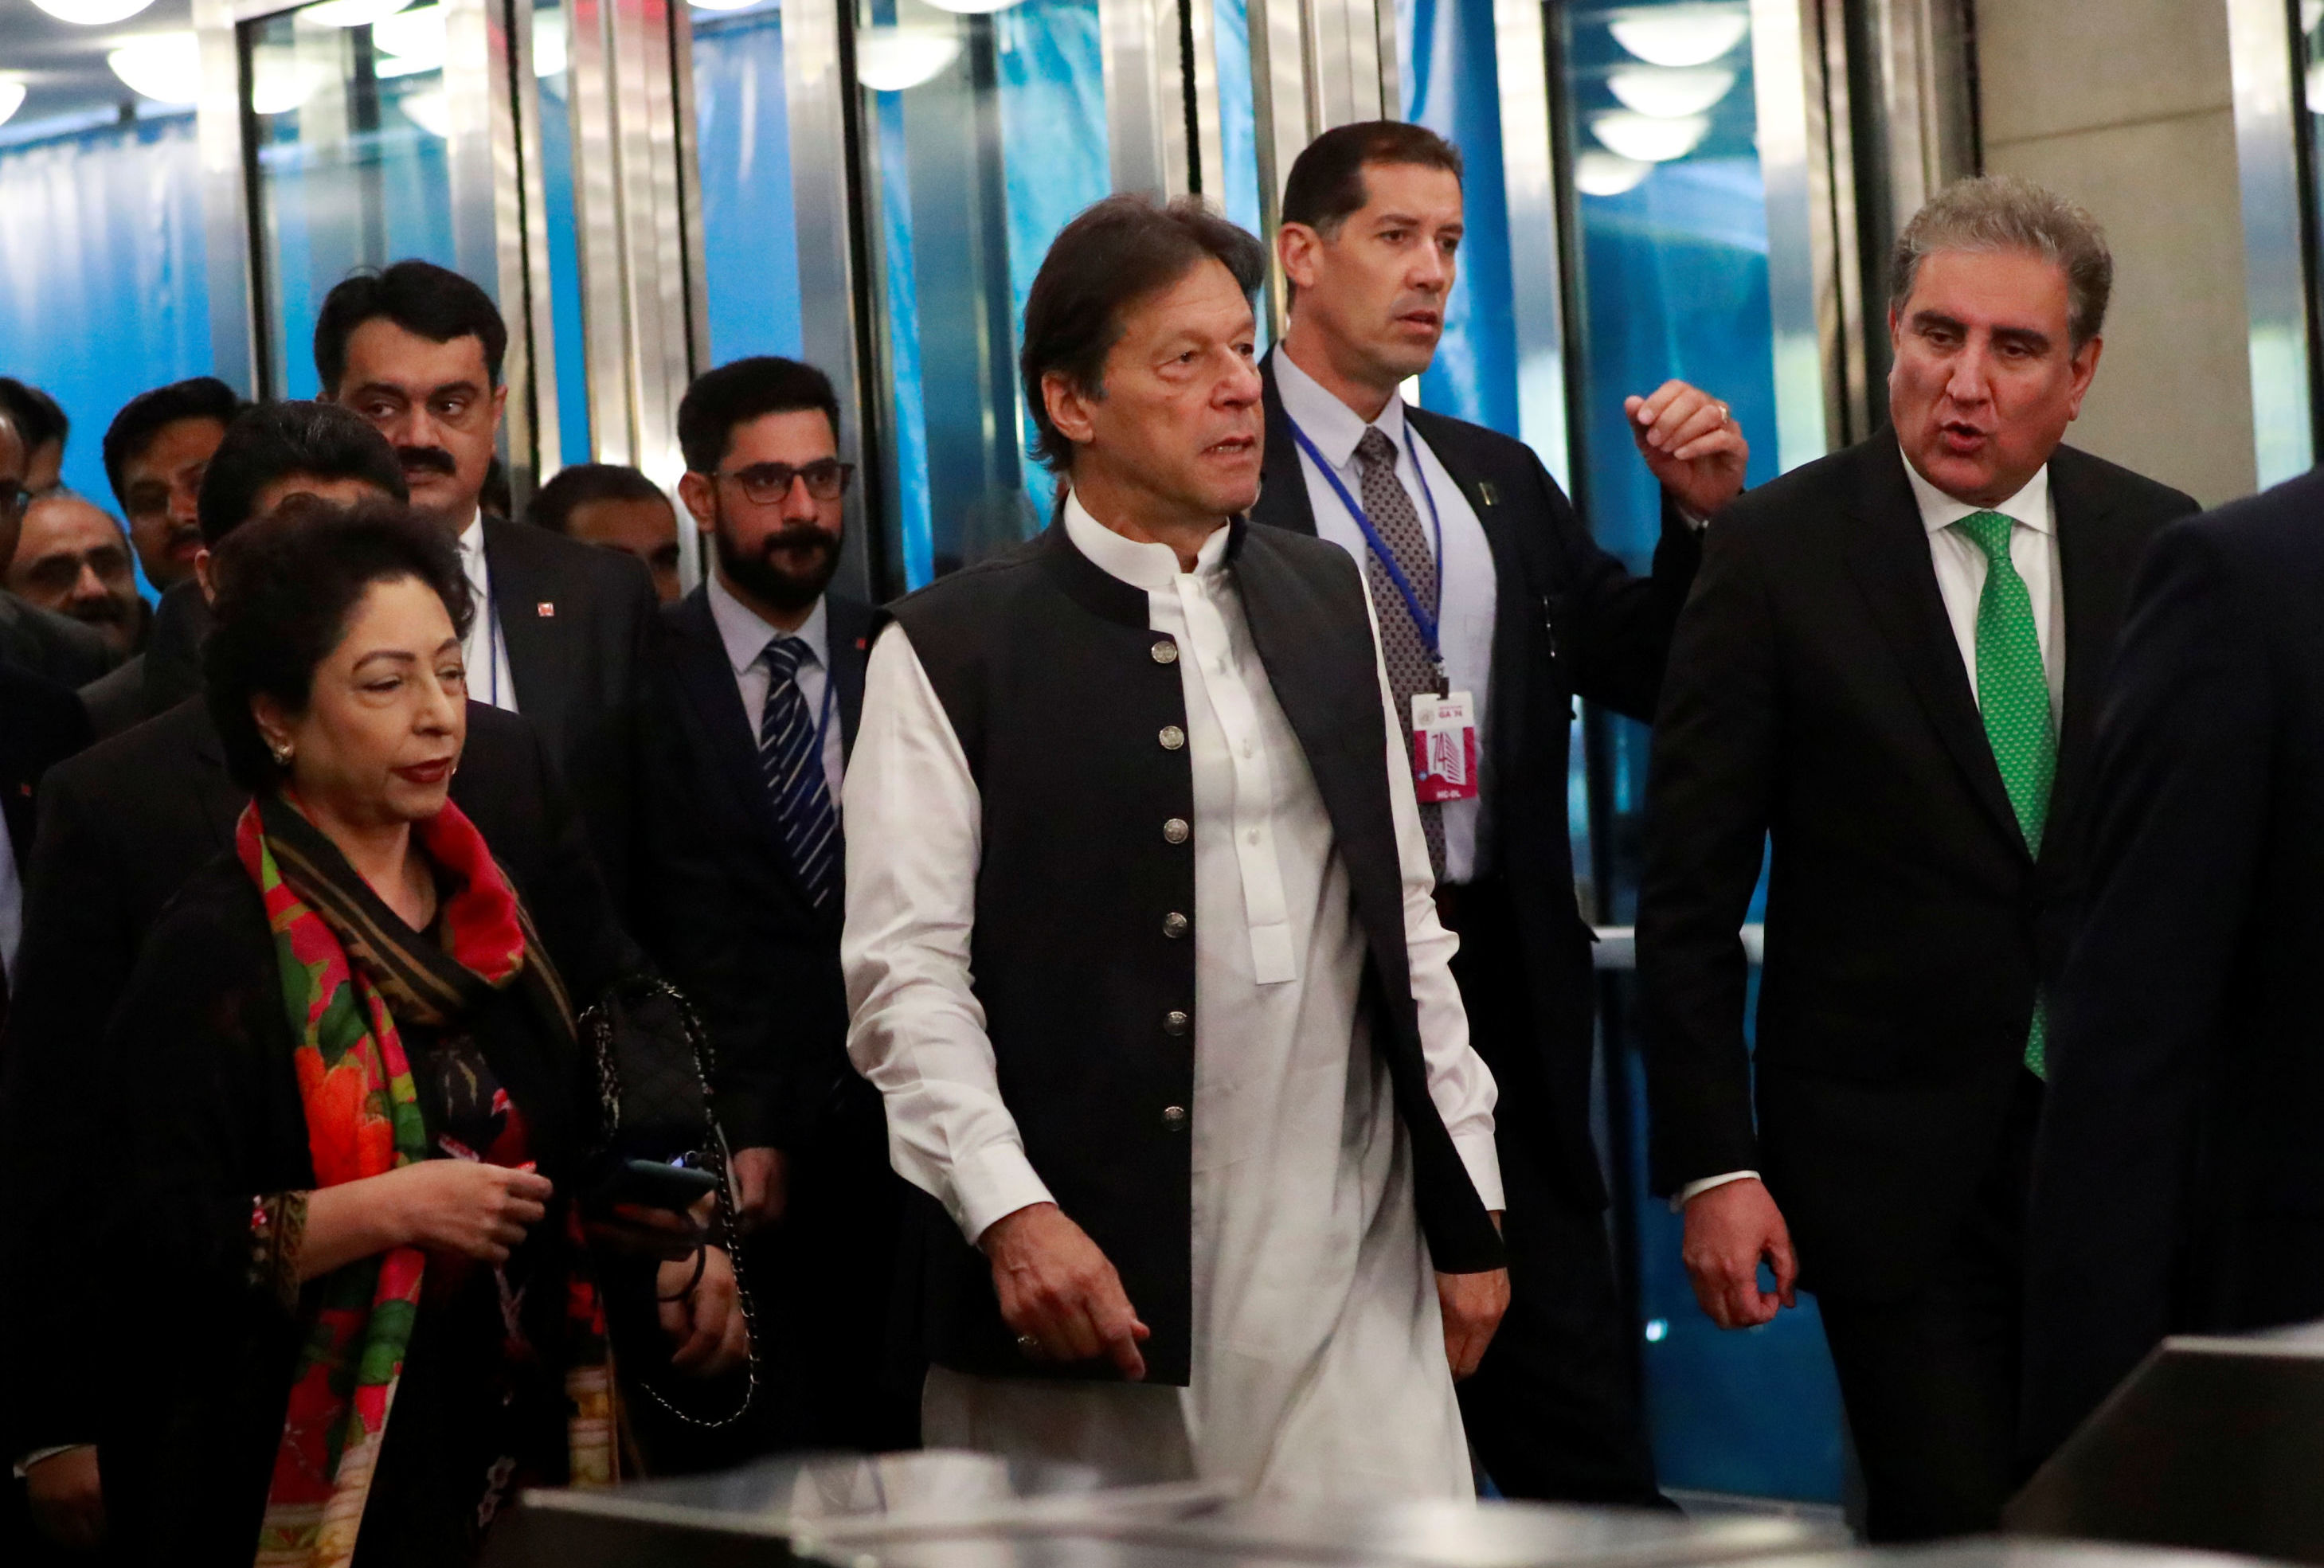 Pakistan's Prime Minister Imran Khan arrives ahead of the start of the 74th session of the United Nations General Assembly at U.N. headquarters in New York City New York U.S